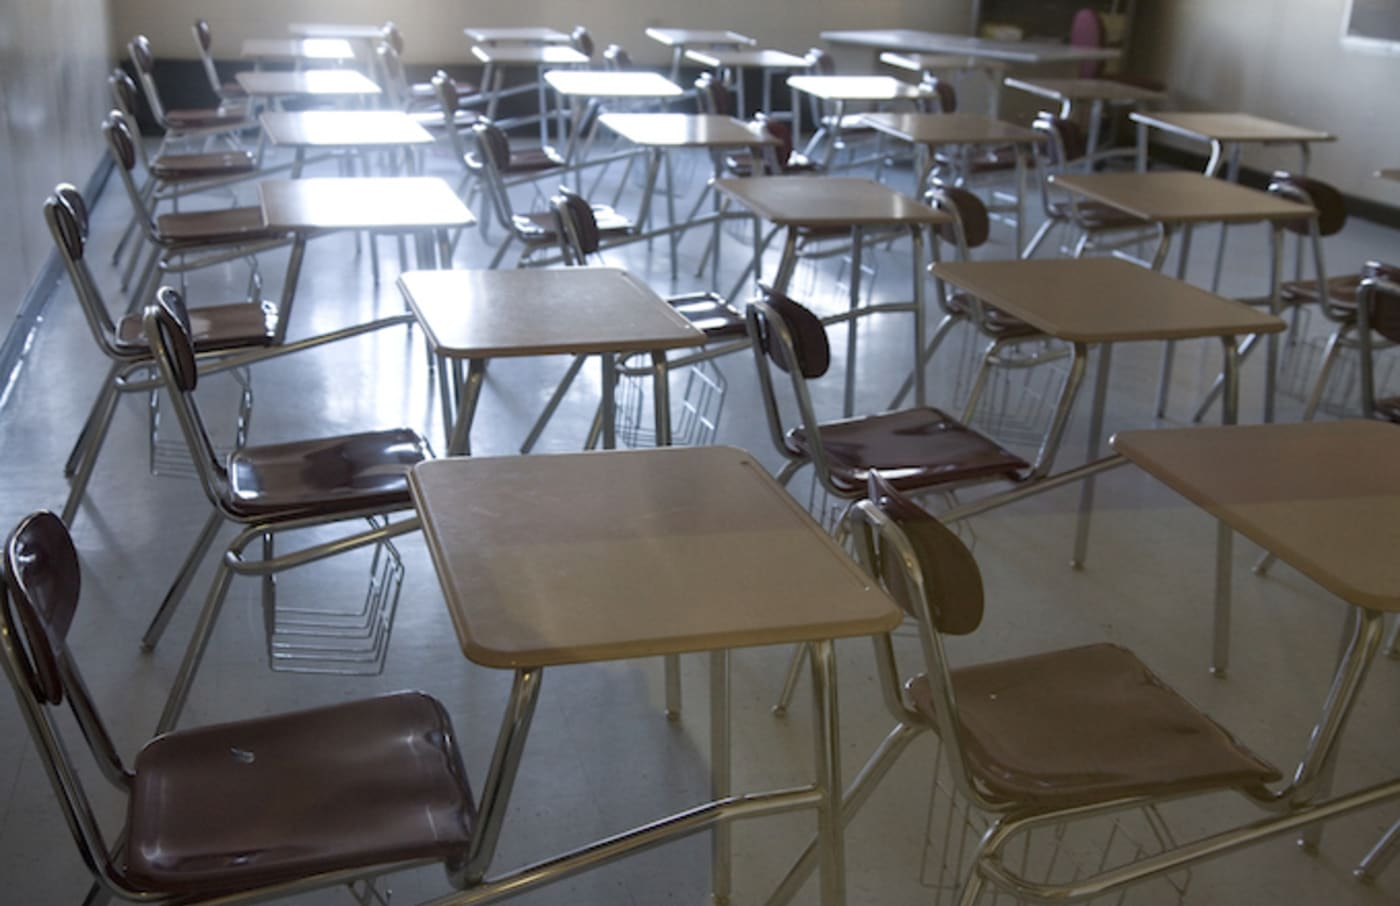 Empty chairs and desks in a high school classroom